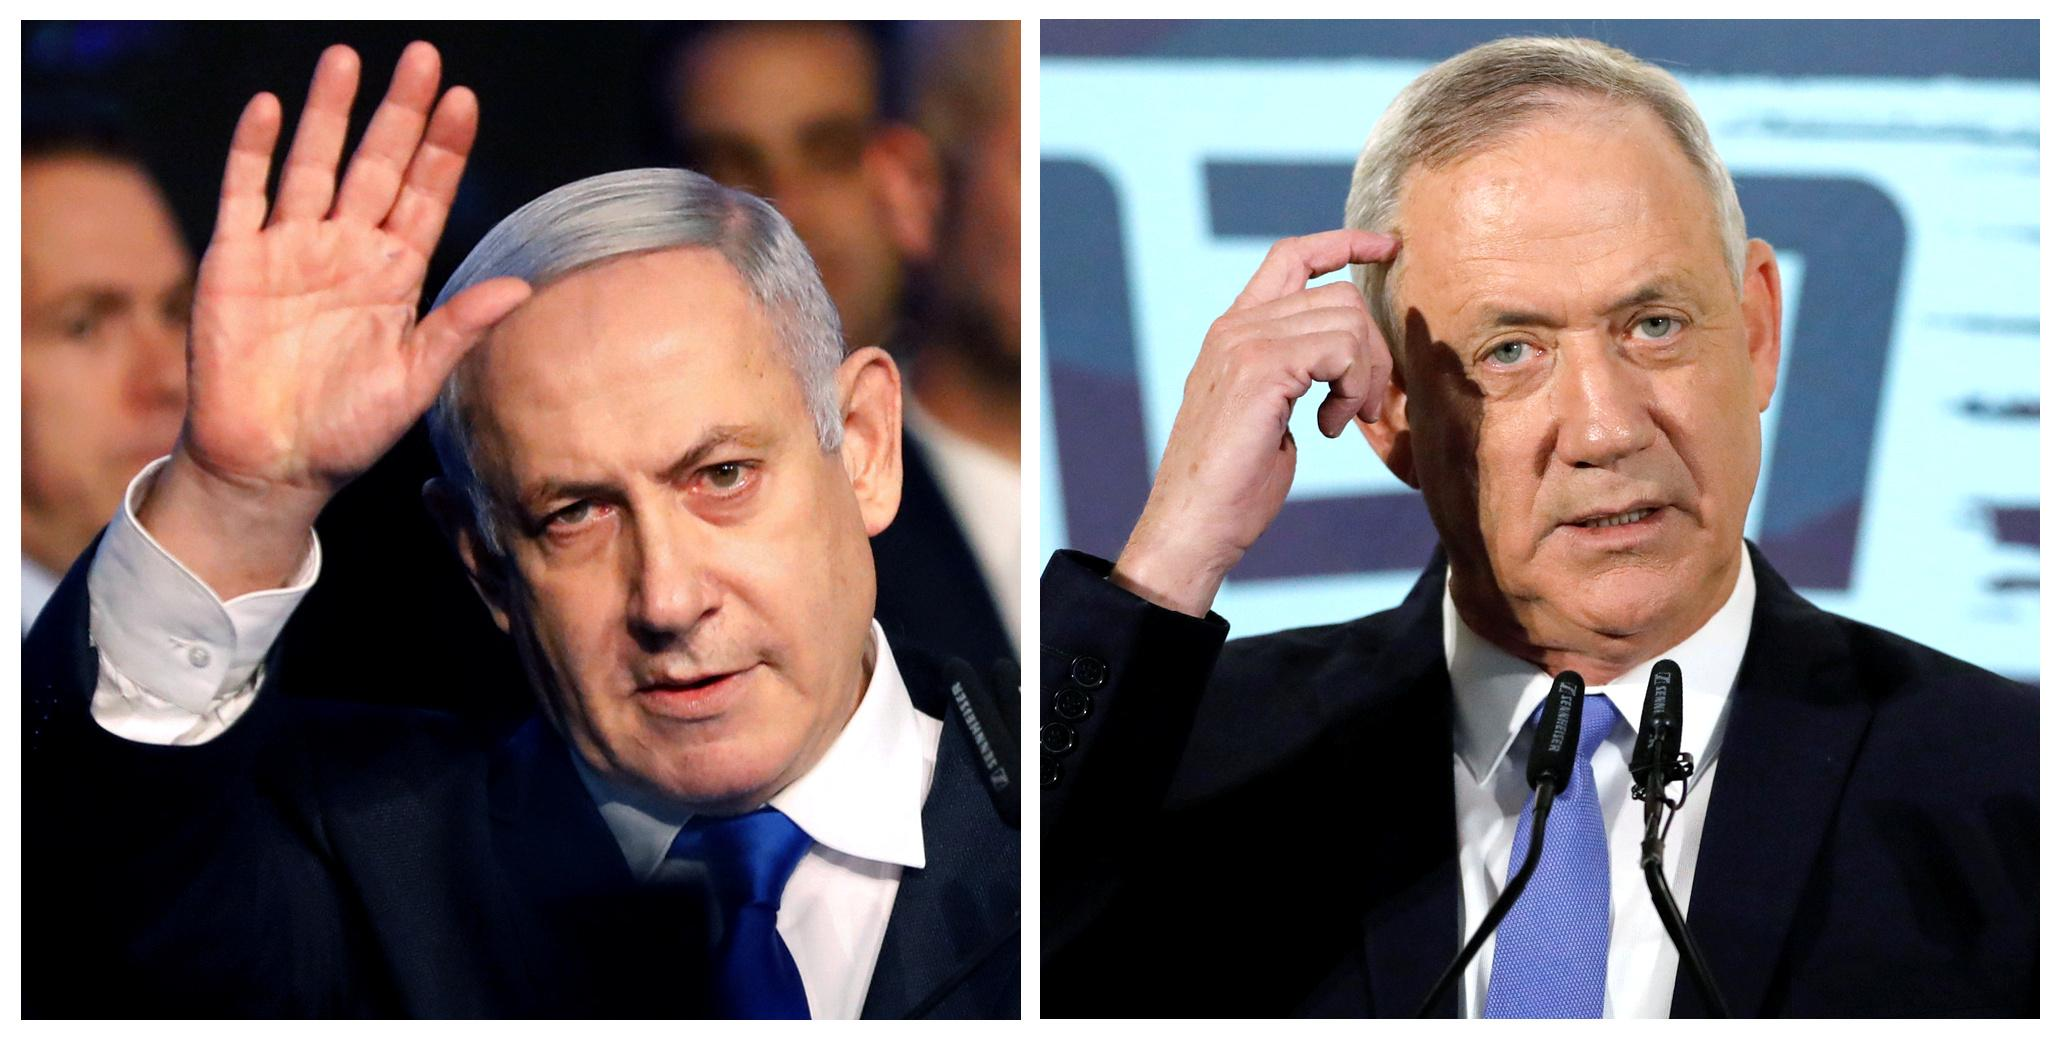 'Dark days' in Israel after PM and rival fail to form government,...